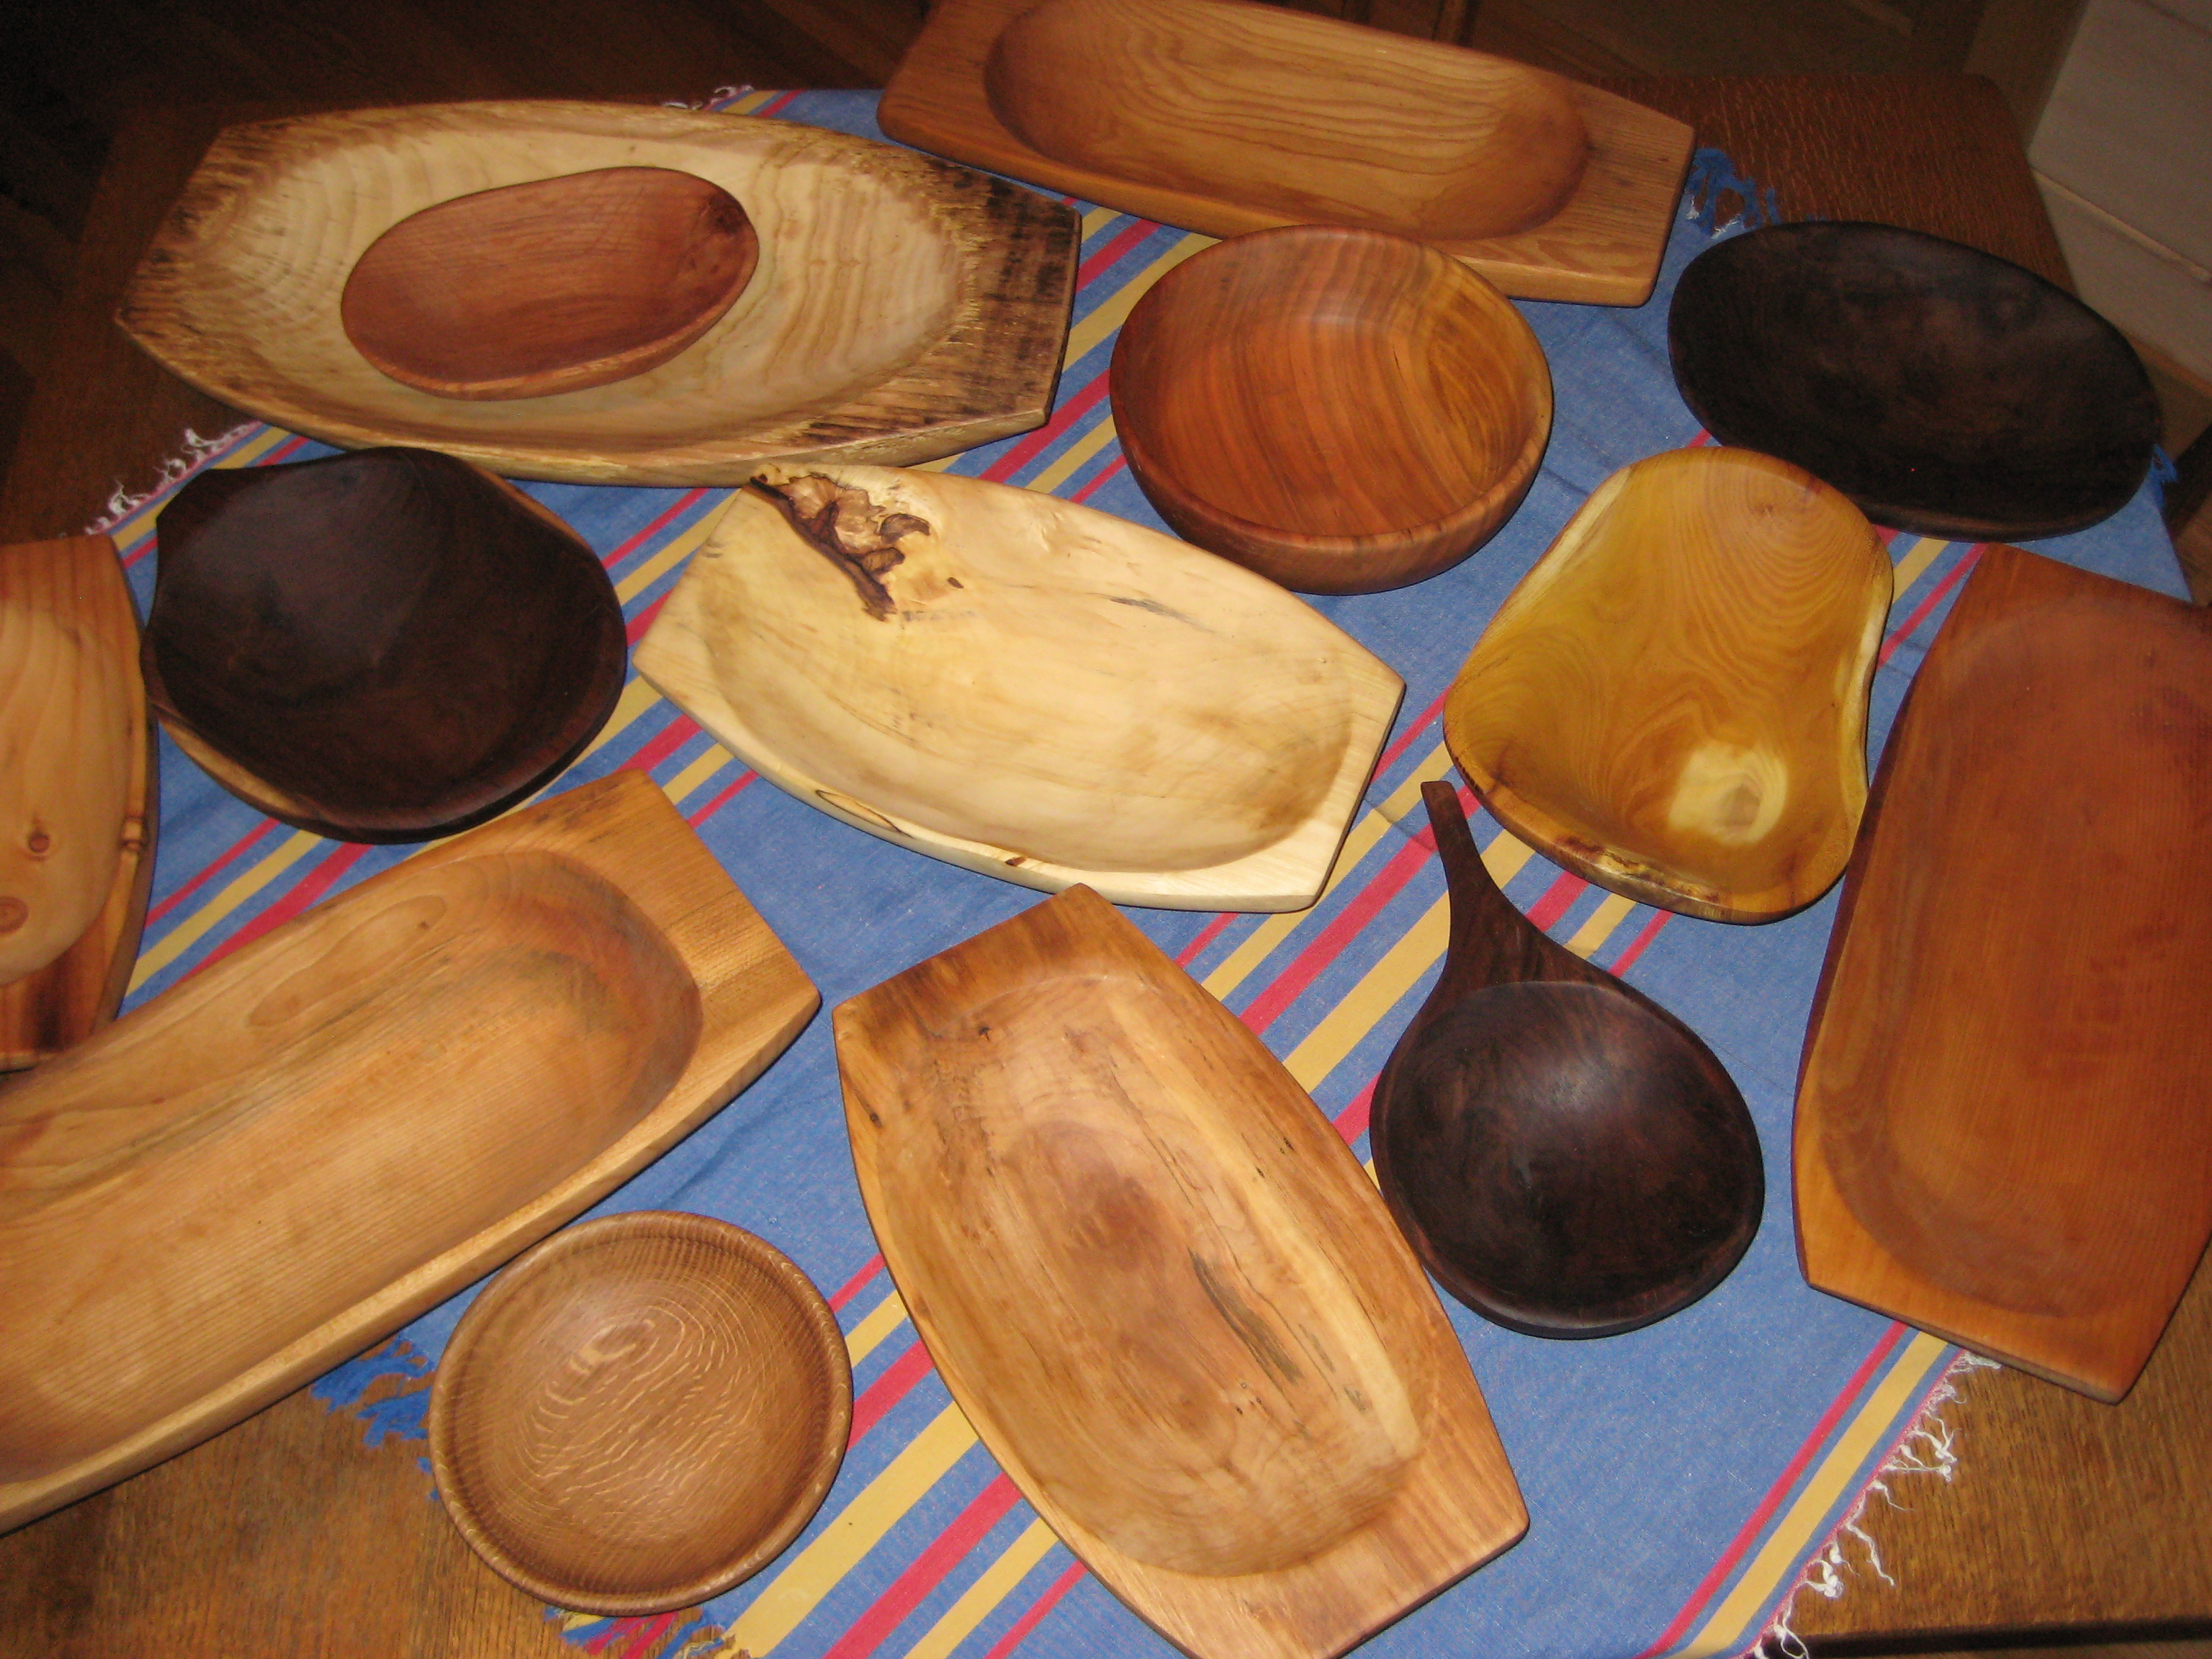 display of bowls IMG_4558